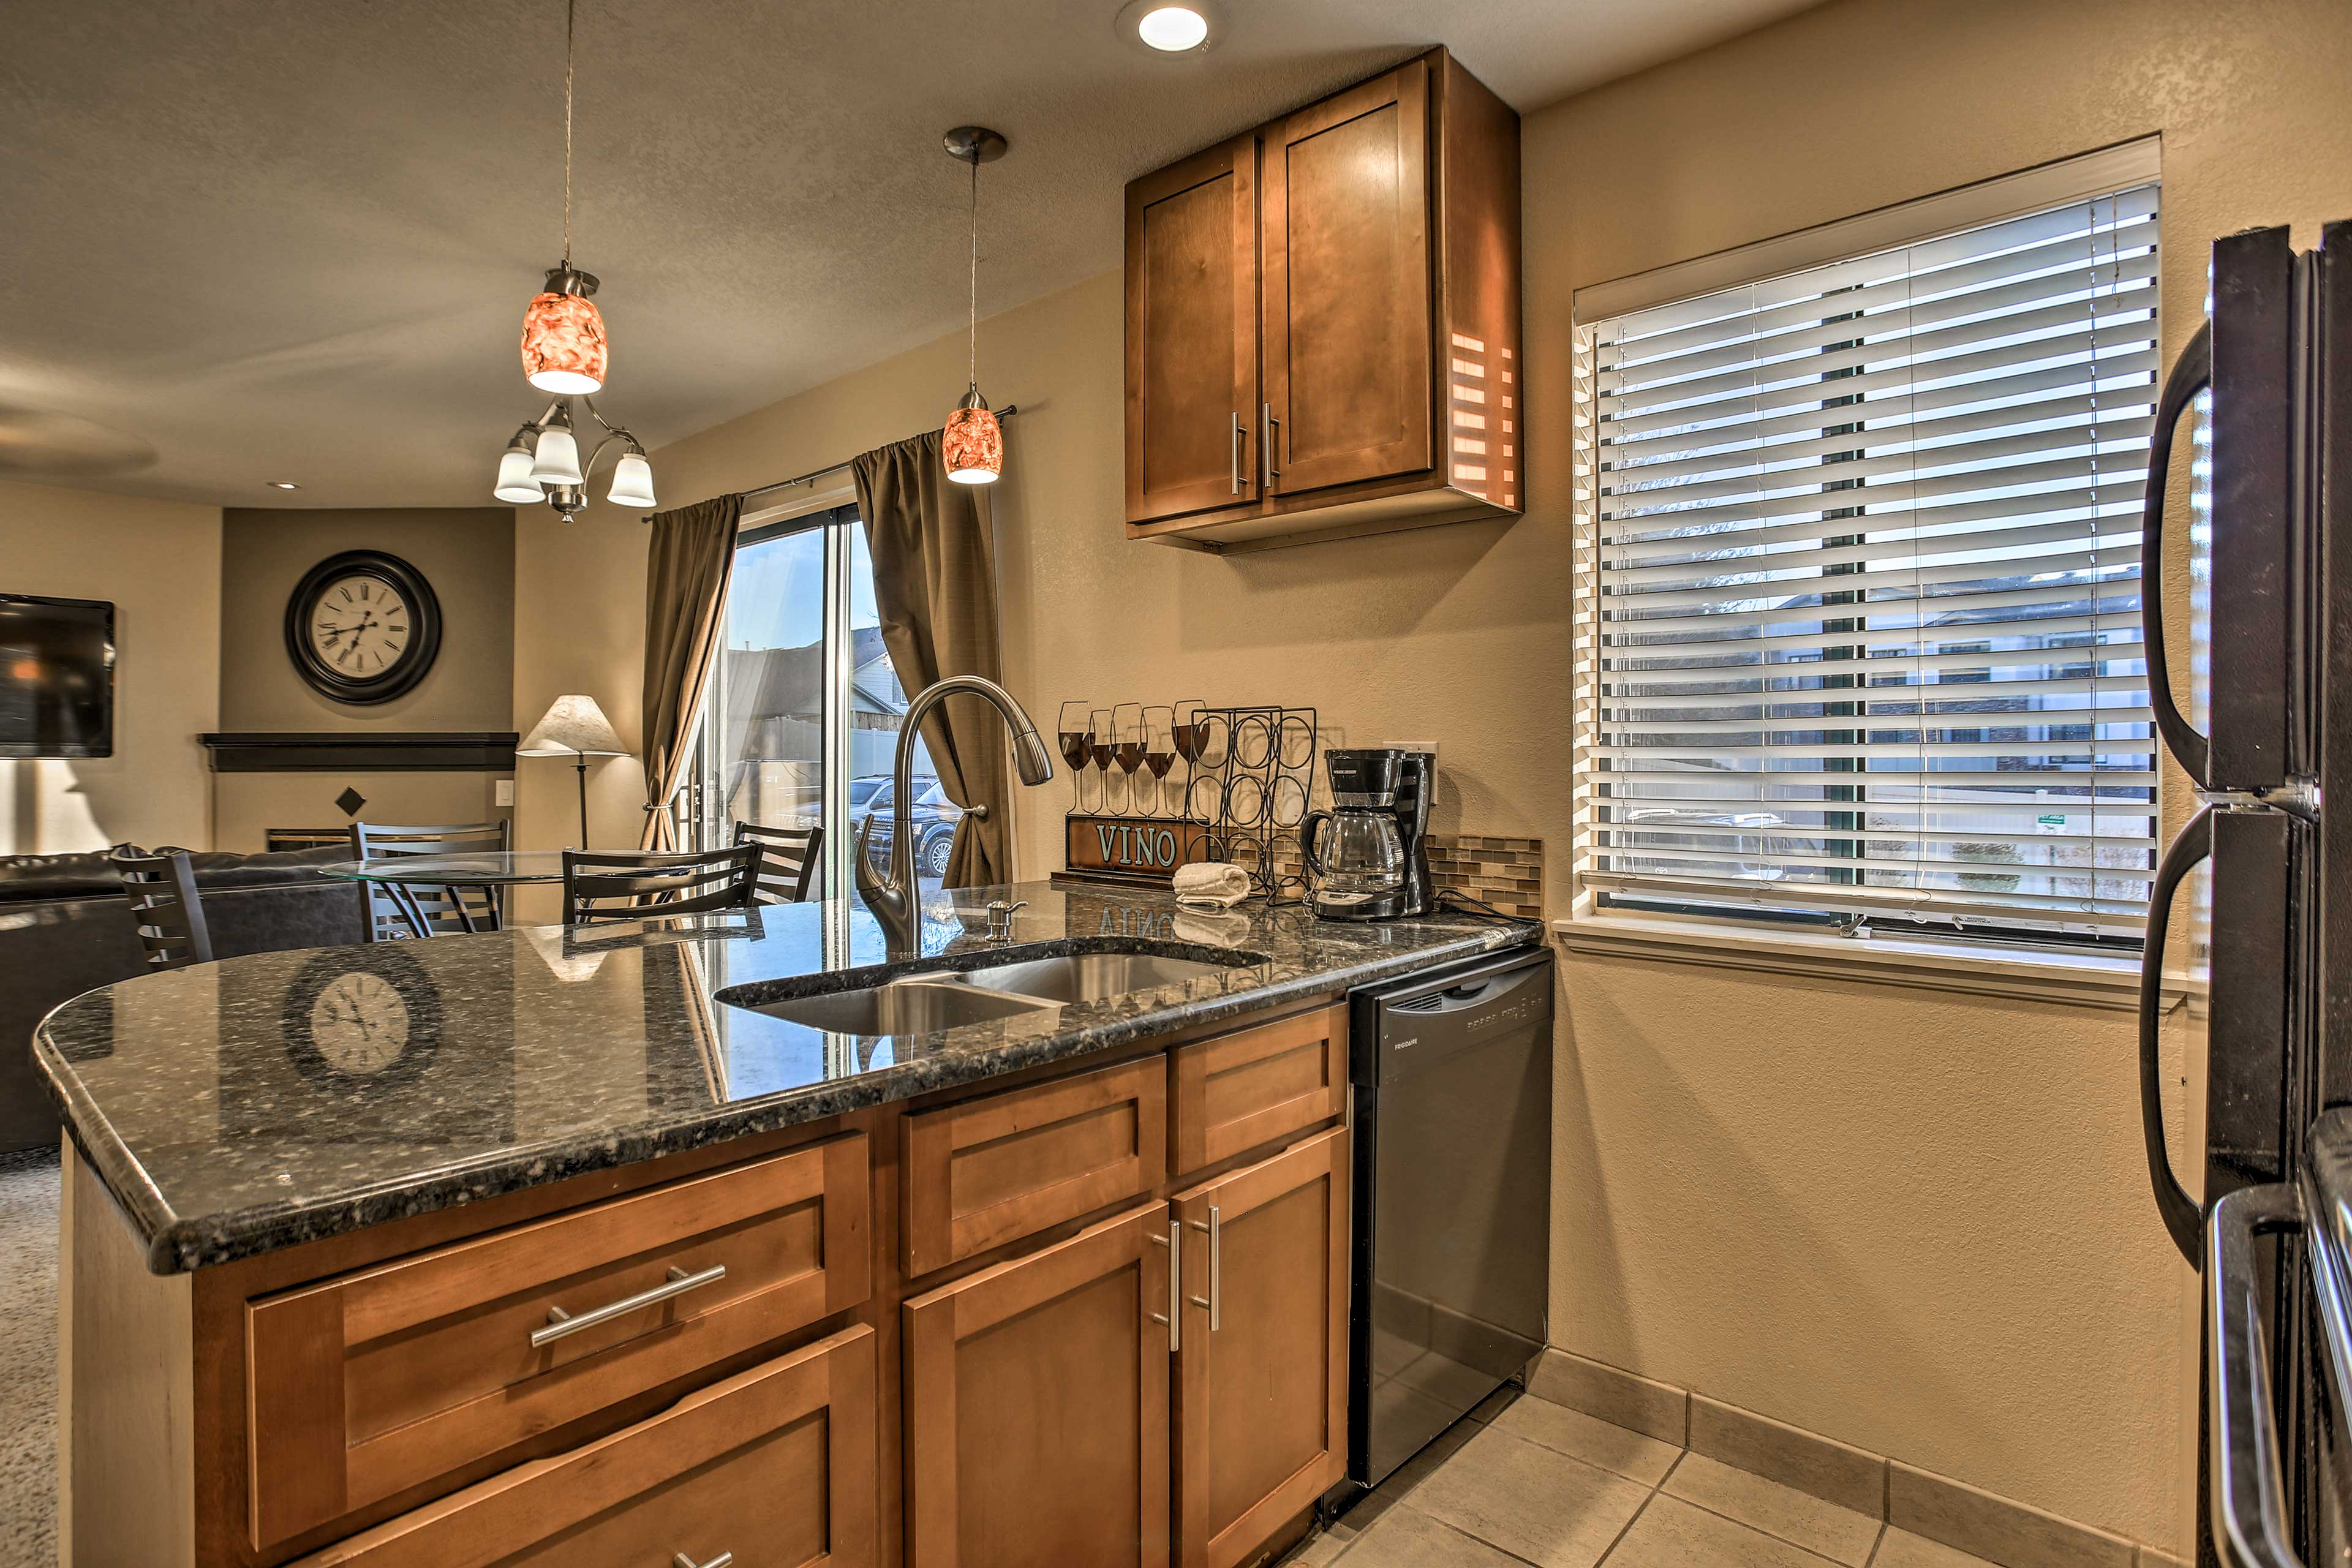 This kitchen is fully equipped with all appliances necessary.